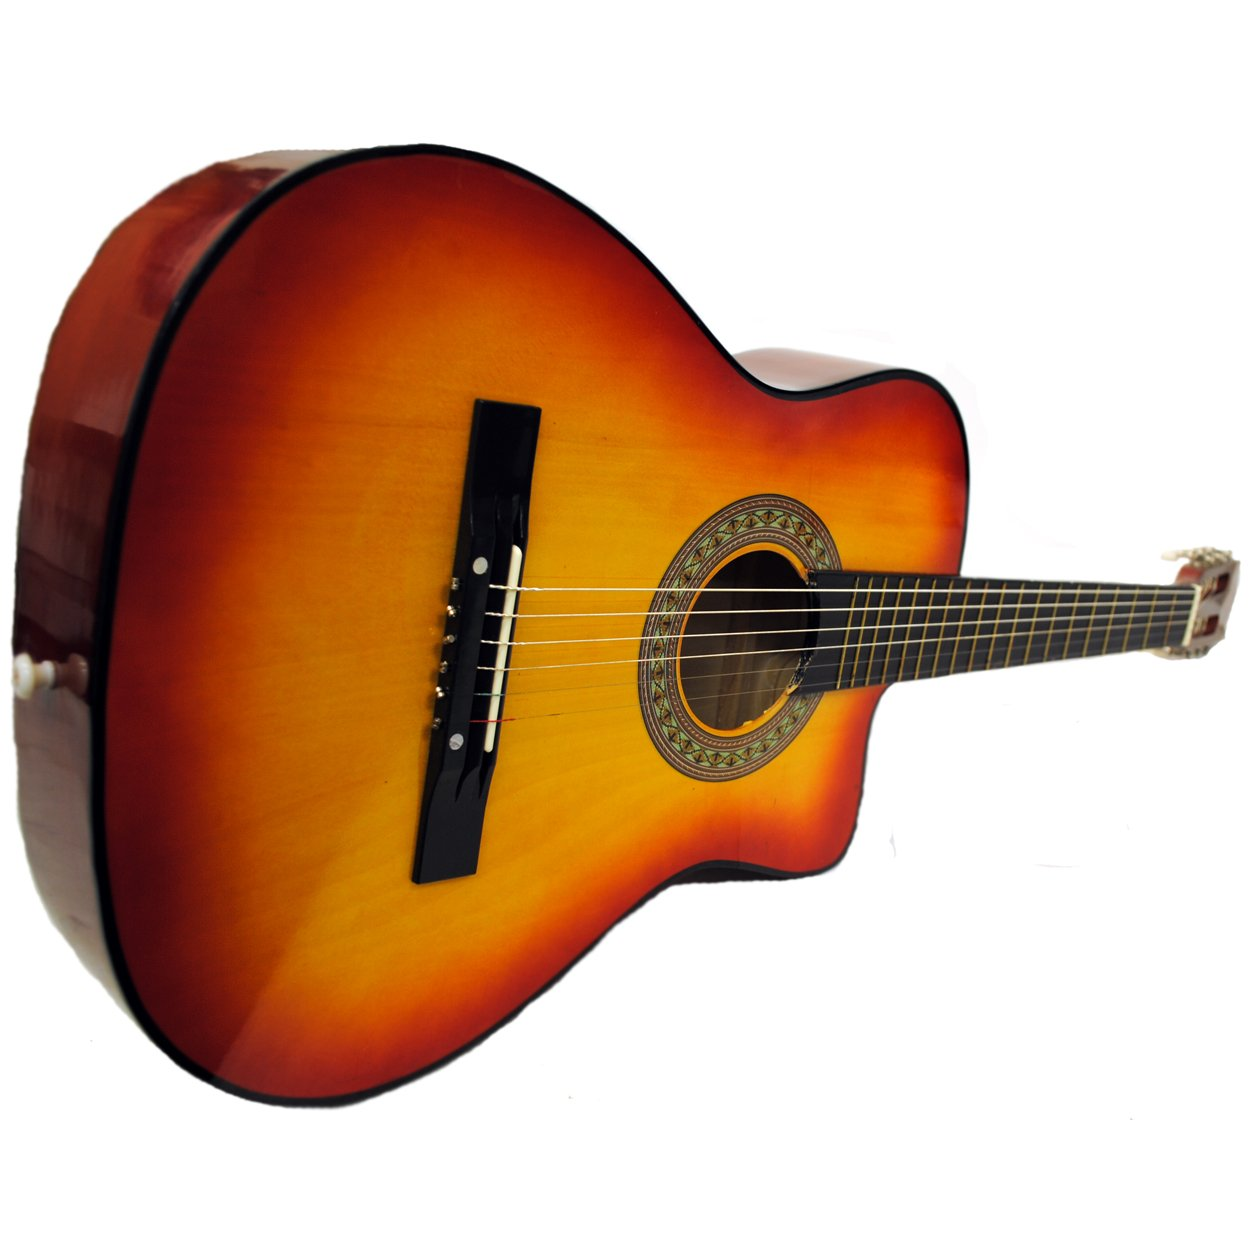 Shop4Omni Full Size Acoustic Country/Bluegrass Cutaway Guitar with Gig Bag (Cherry Sunburst) by Shop4Omni